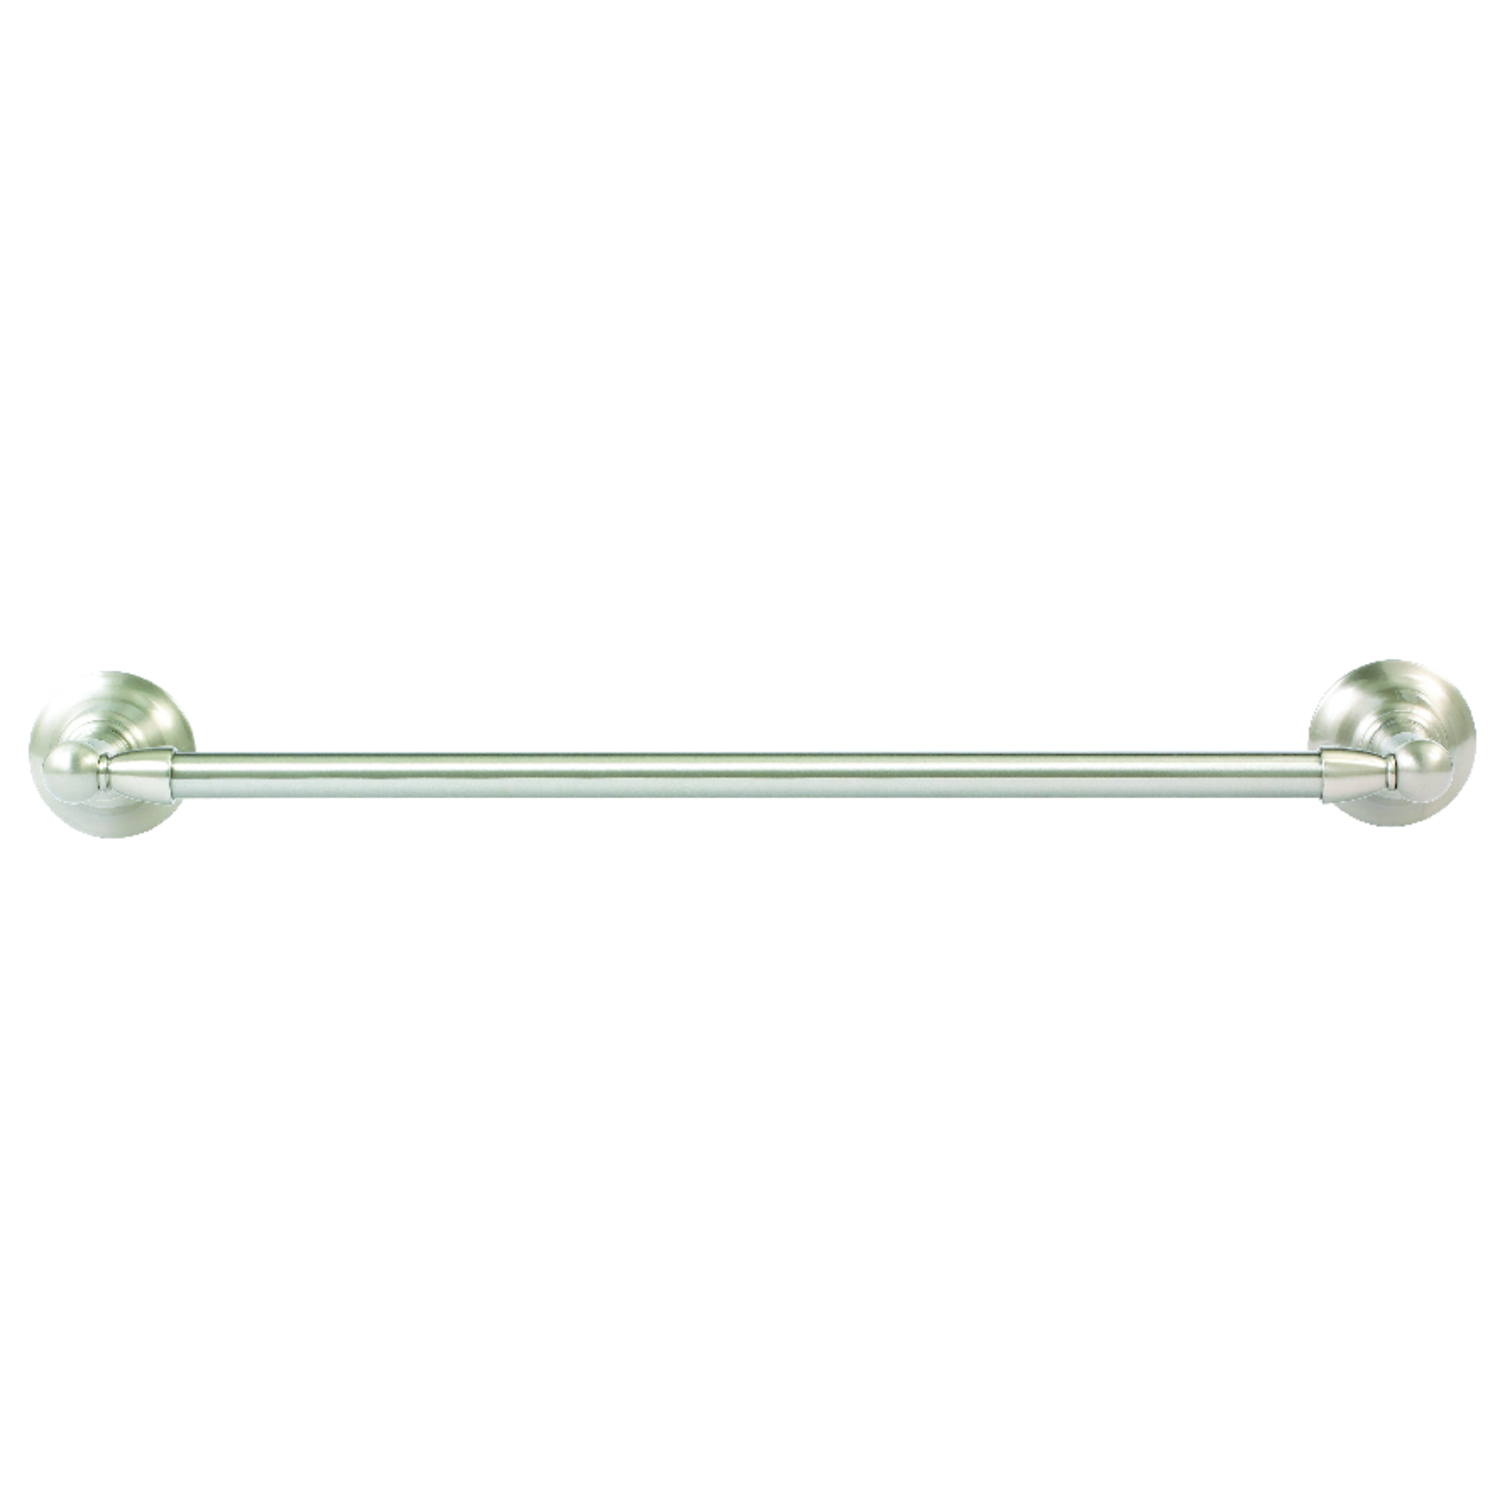 Moen  Sage  Brushed Nickel  Towel Bar  18 in. L Aluminum